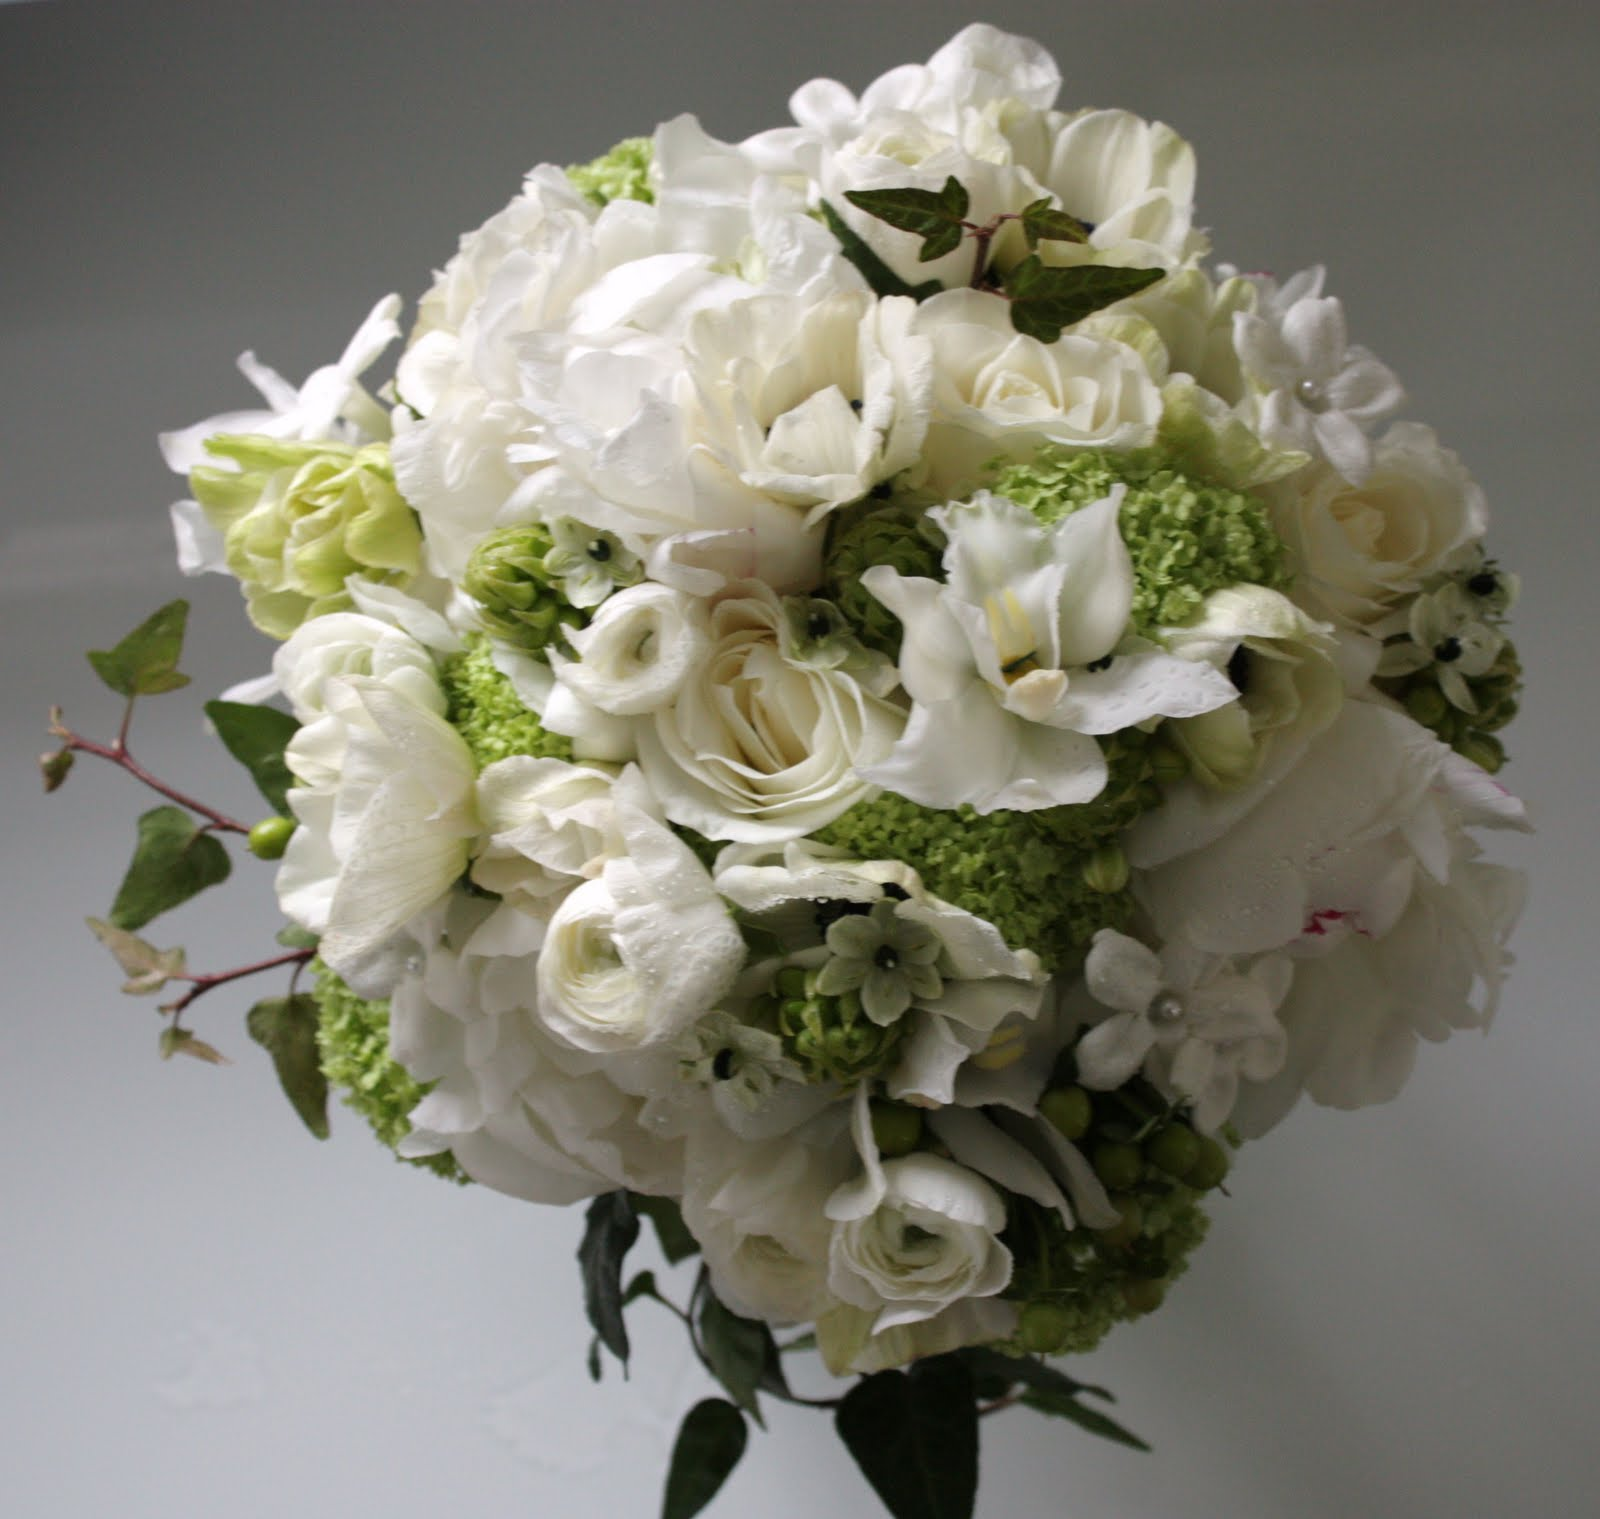 Blush floral design november 2009 as white peonies ranunculus green hydrangea white anemones green parrot tulips lisianthus curly willow branches roses and other seasonal flowers mightylinksfo